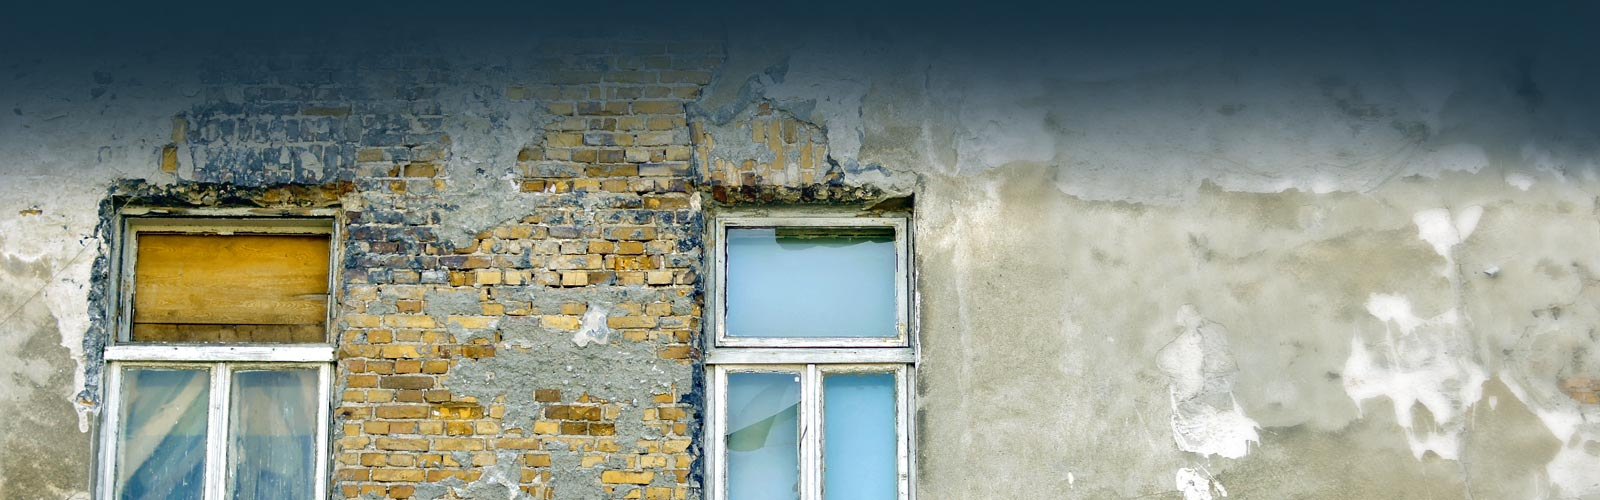 Dilapidations Valuations Surveying with Occupa Commercial Property Consultants